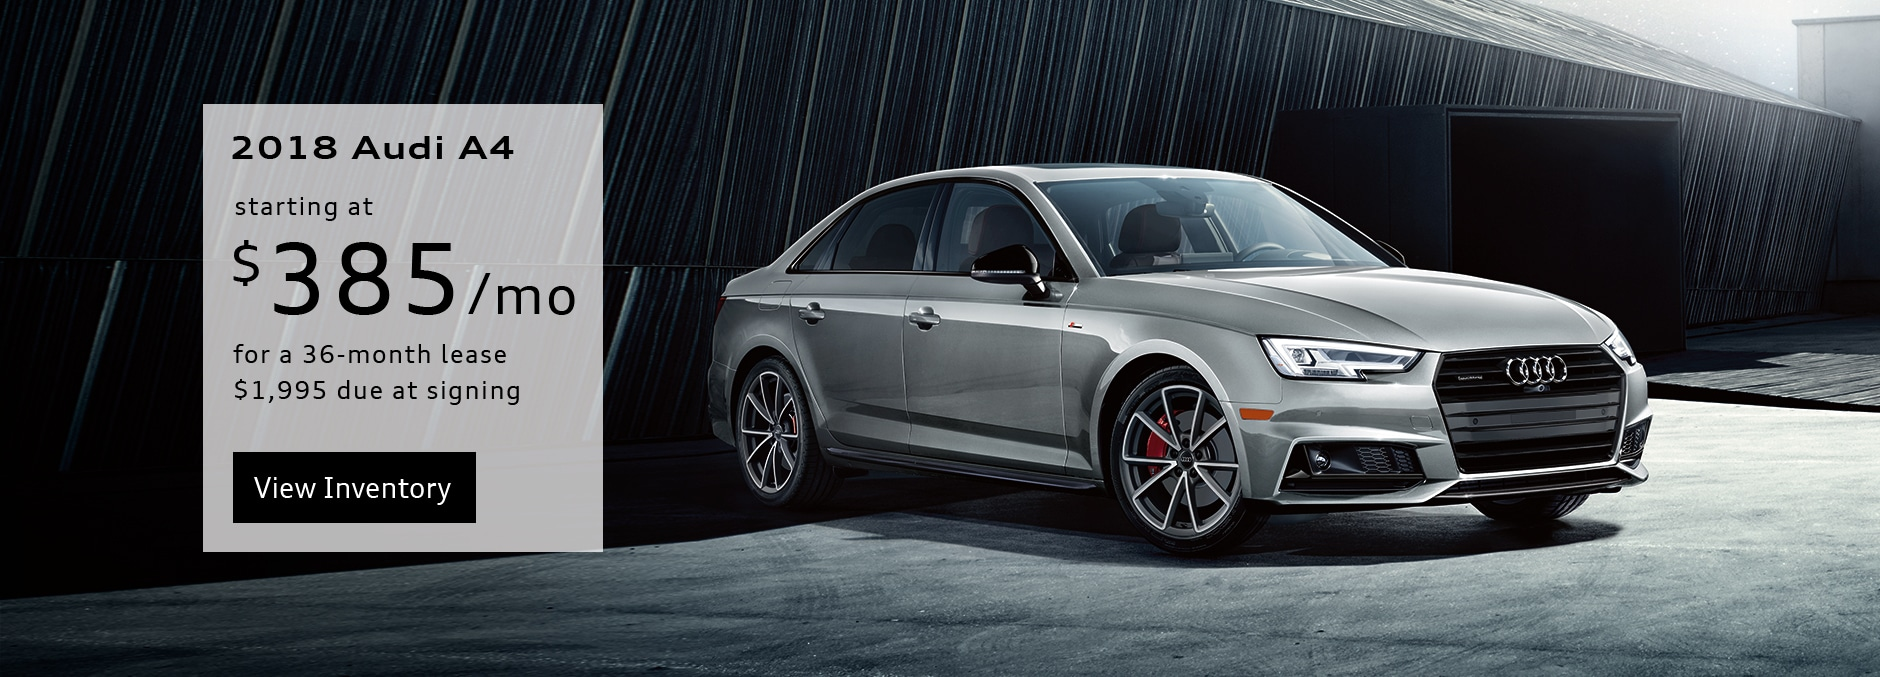 car of sportback chicago unique deals audi review lease first awesome lovely quattro